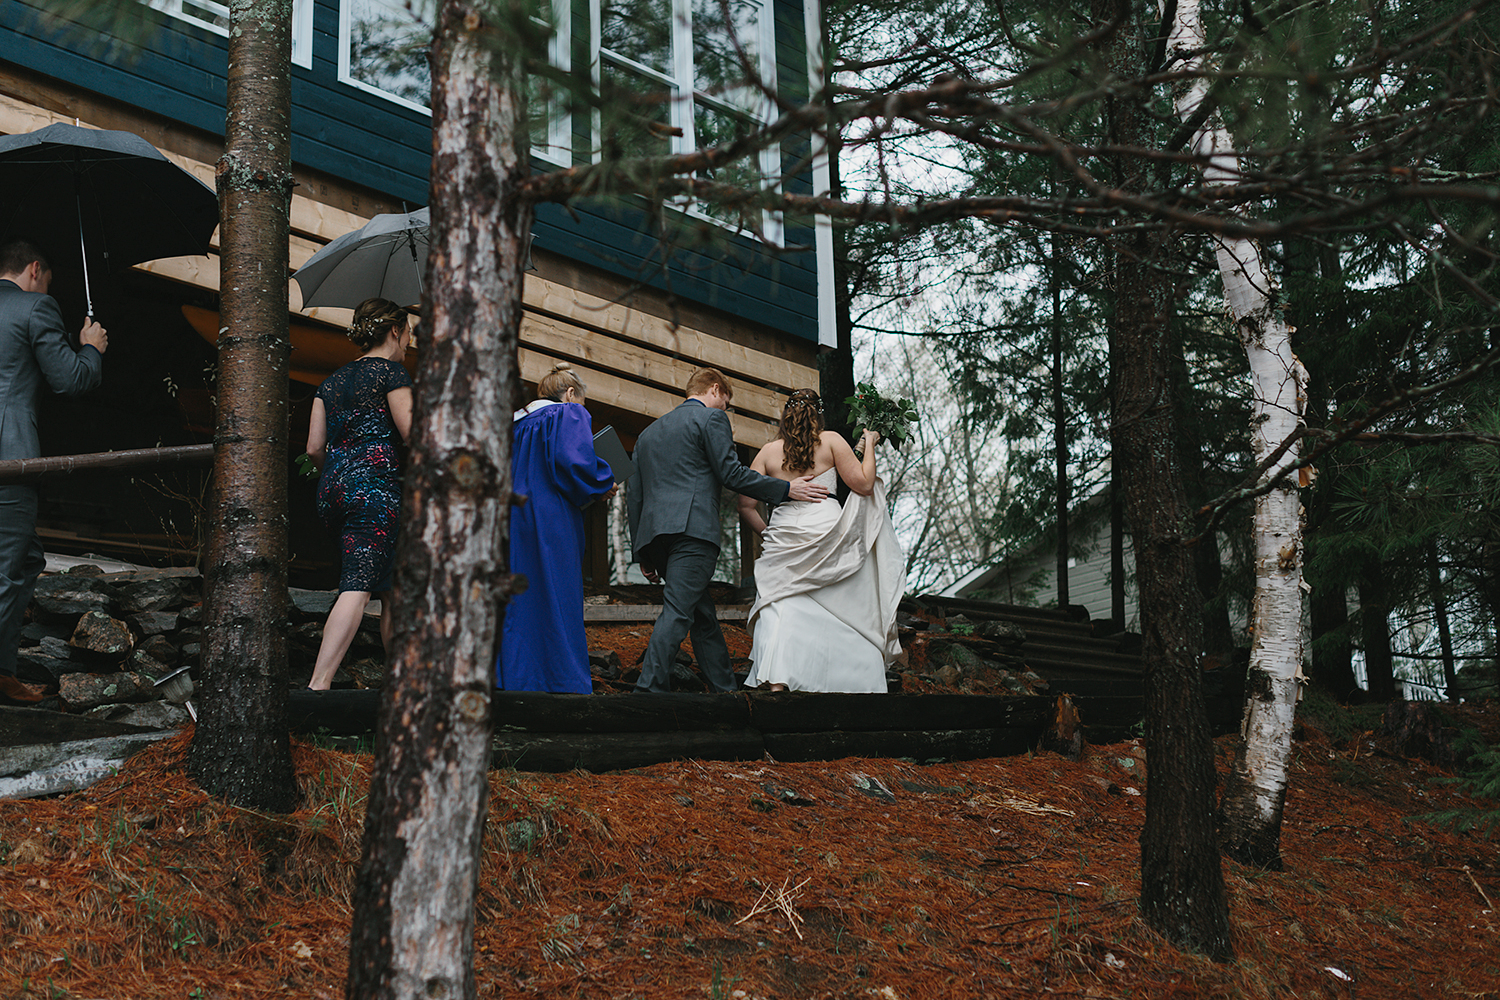 intimate-cottage-family-wedding-in-haliburton-muskokas-toronto-wedding-photography-by-simple-and-natural-photojournalist-ryanne-hollies-ceremony-bride-and-groom-cottage-wedding-inspiration-just-married-happy-couple.jpg